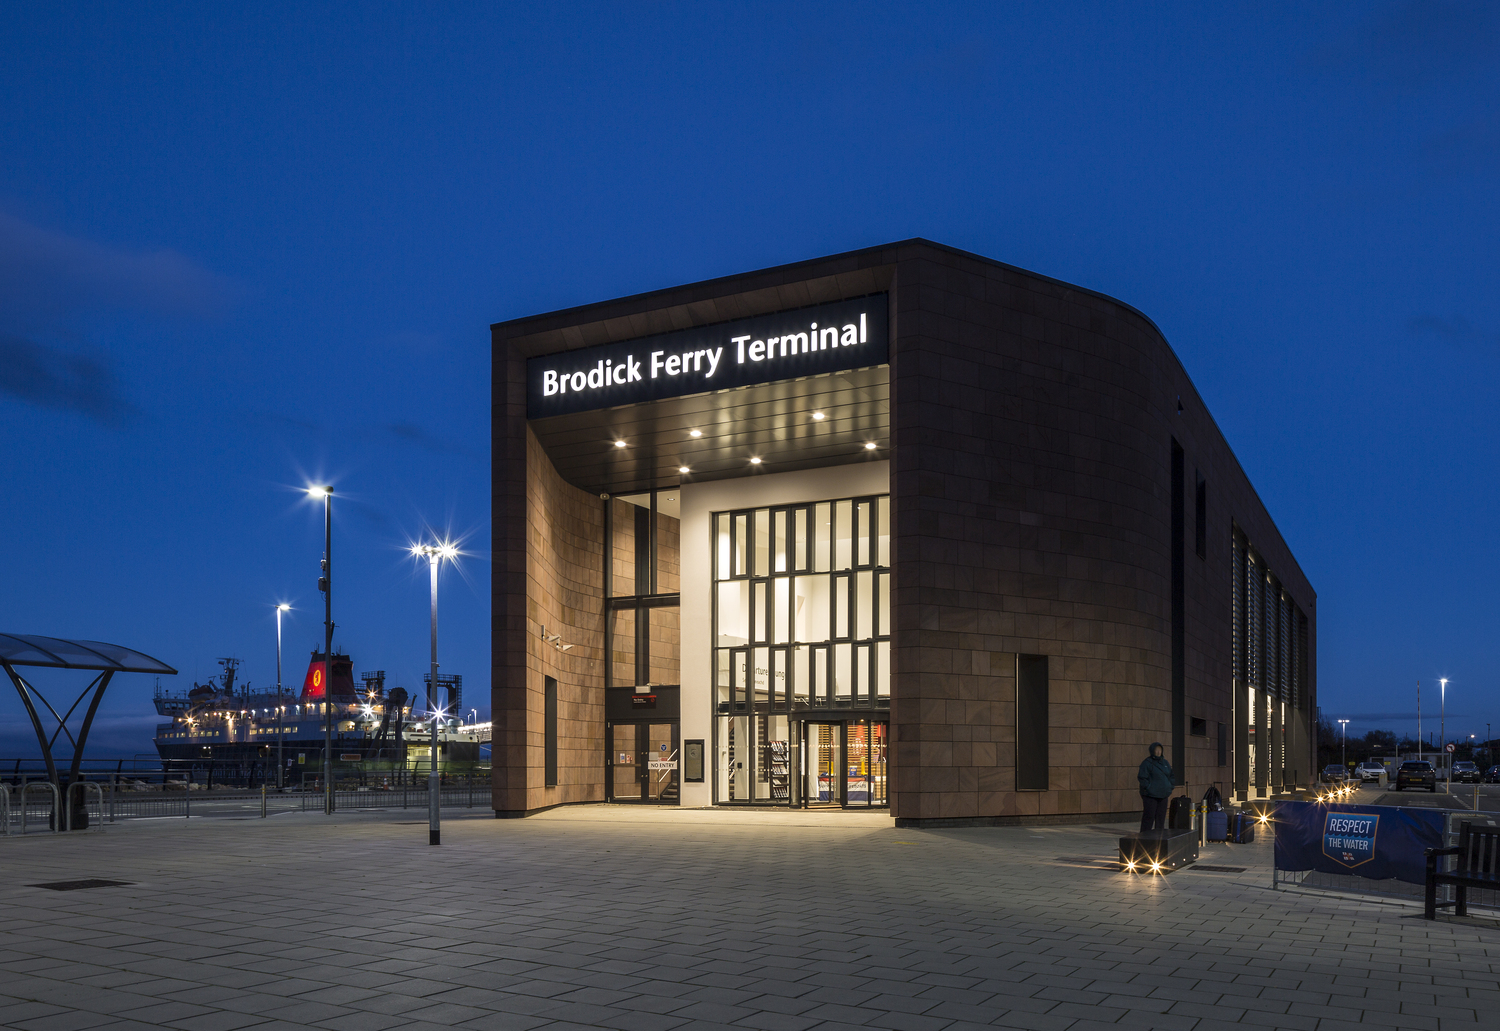 Brodick Ferry Terminal shortlisted for 'Commercial/Industrial Project of the Year' © Keith Hunter